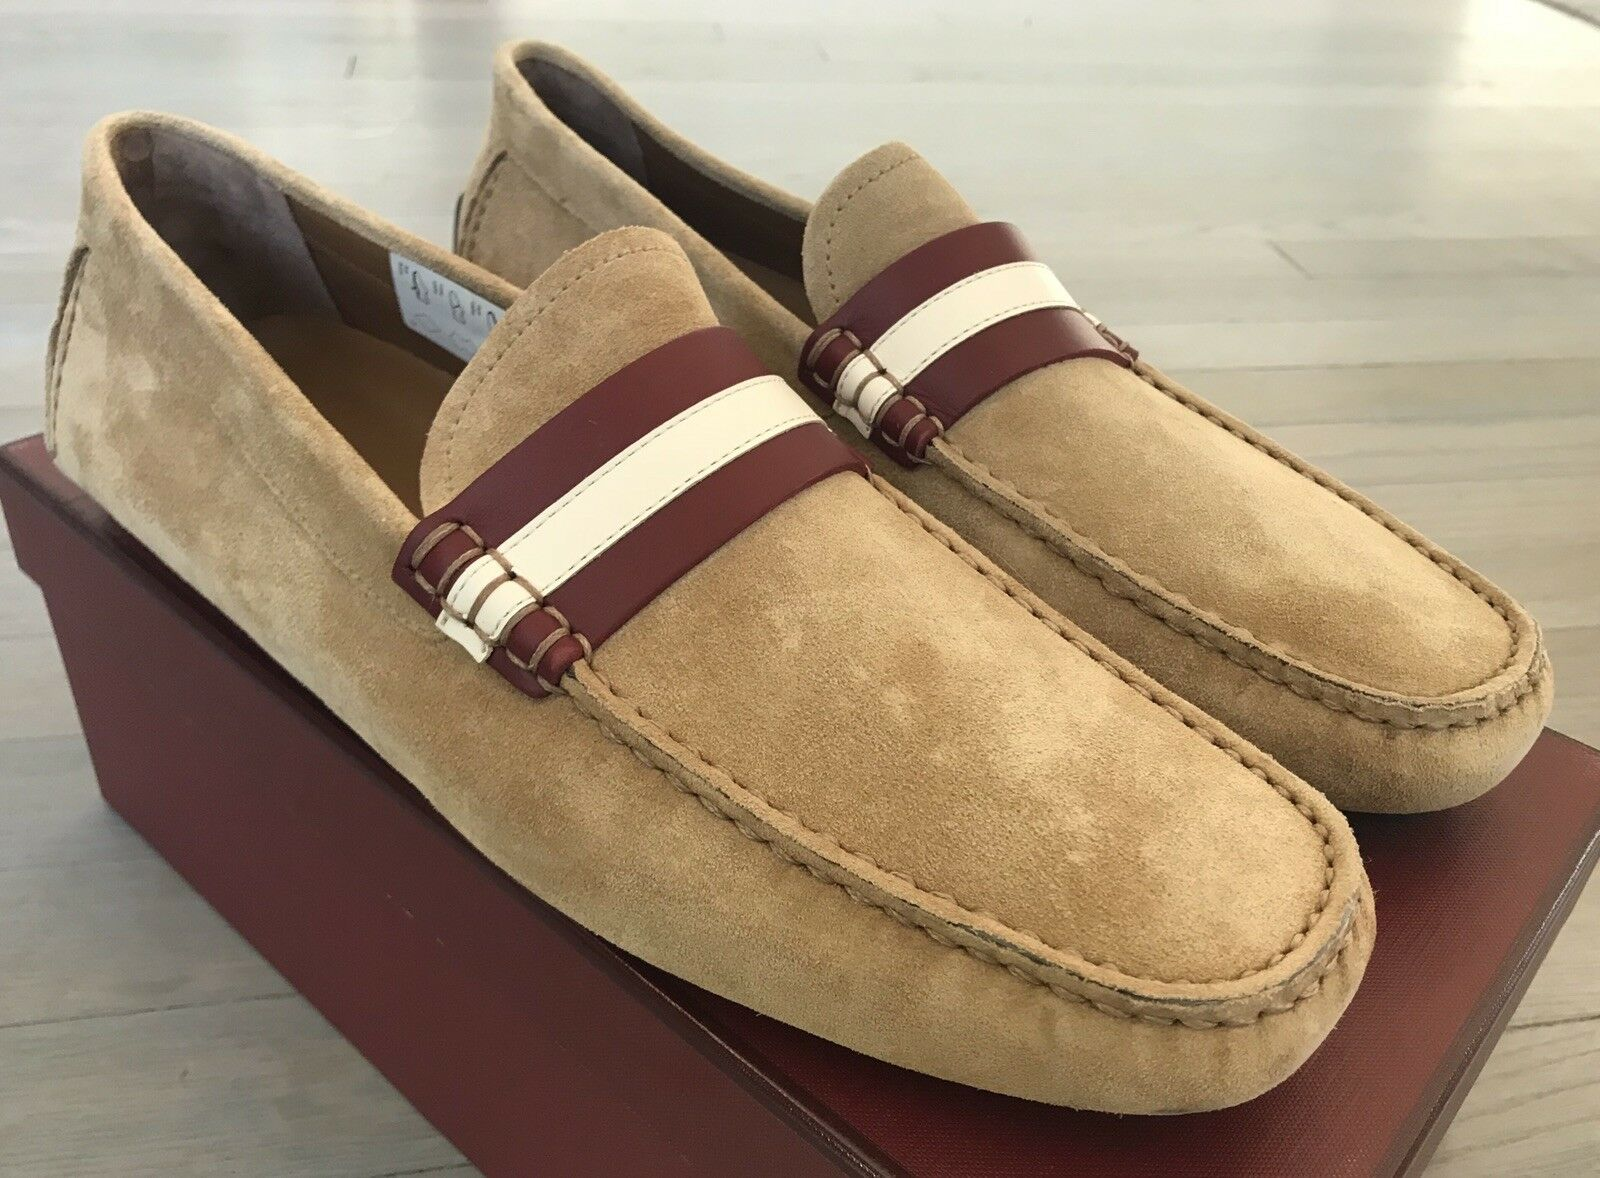 550  Bally Walker Khaki Suede Driver Size US 13 Made in Italy